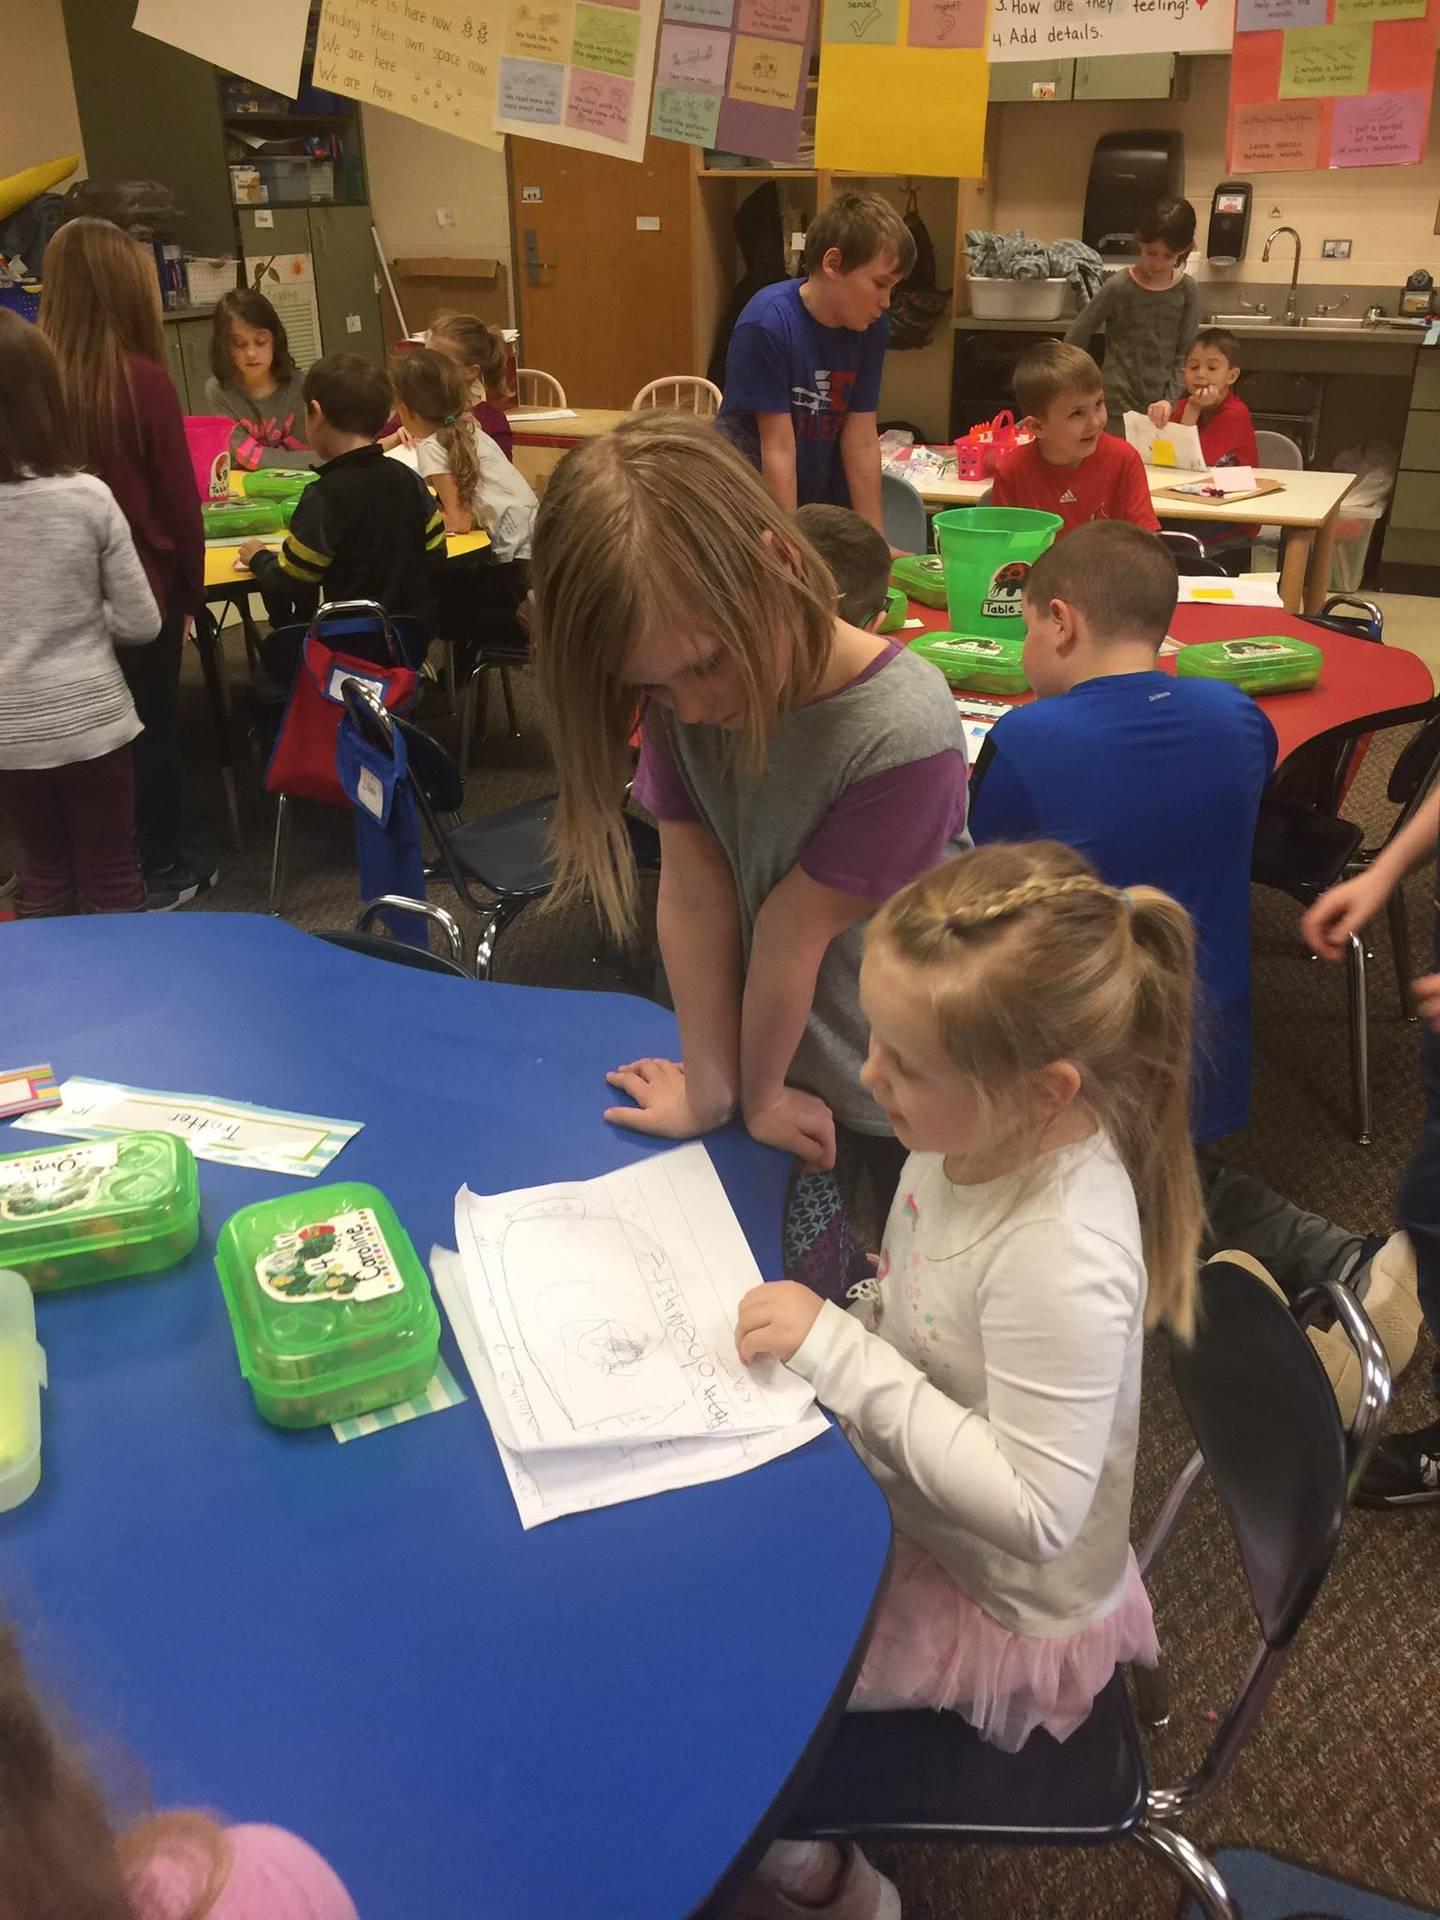 Helping our kindergarten friends celebrate their writing!